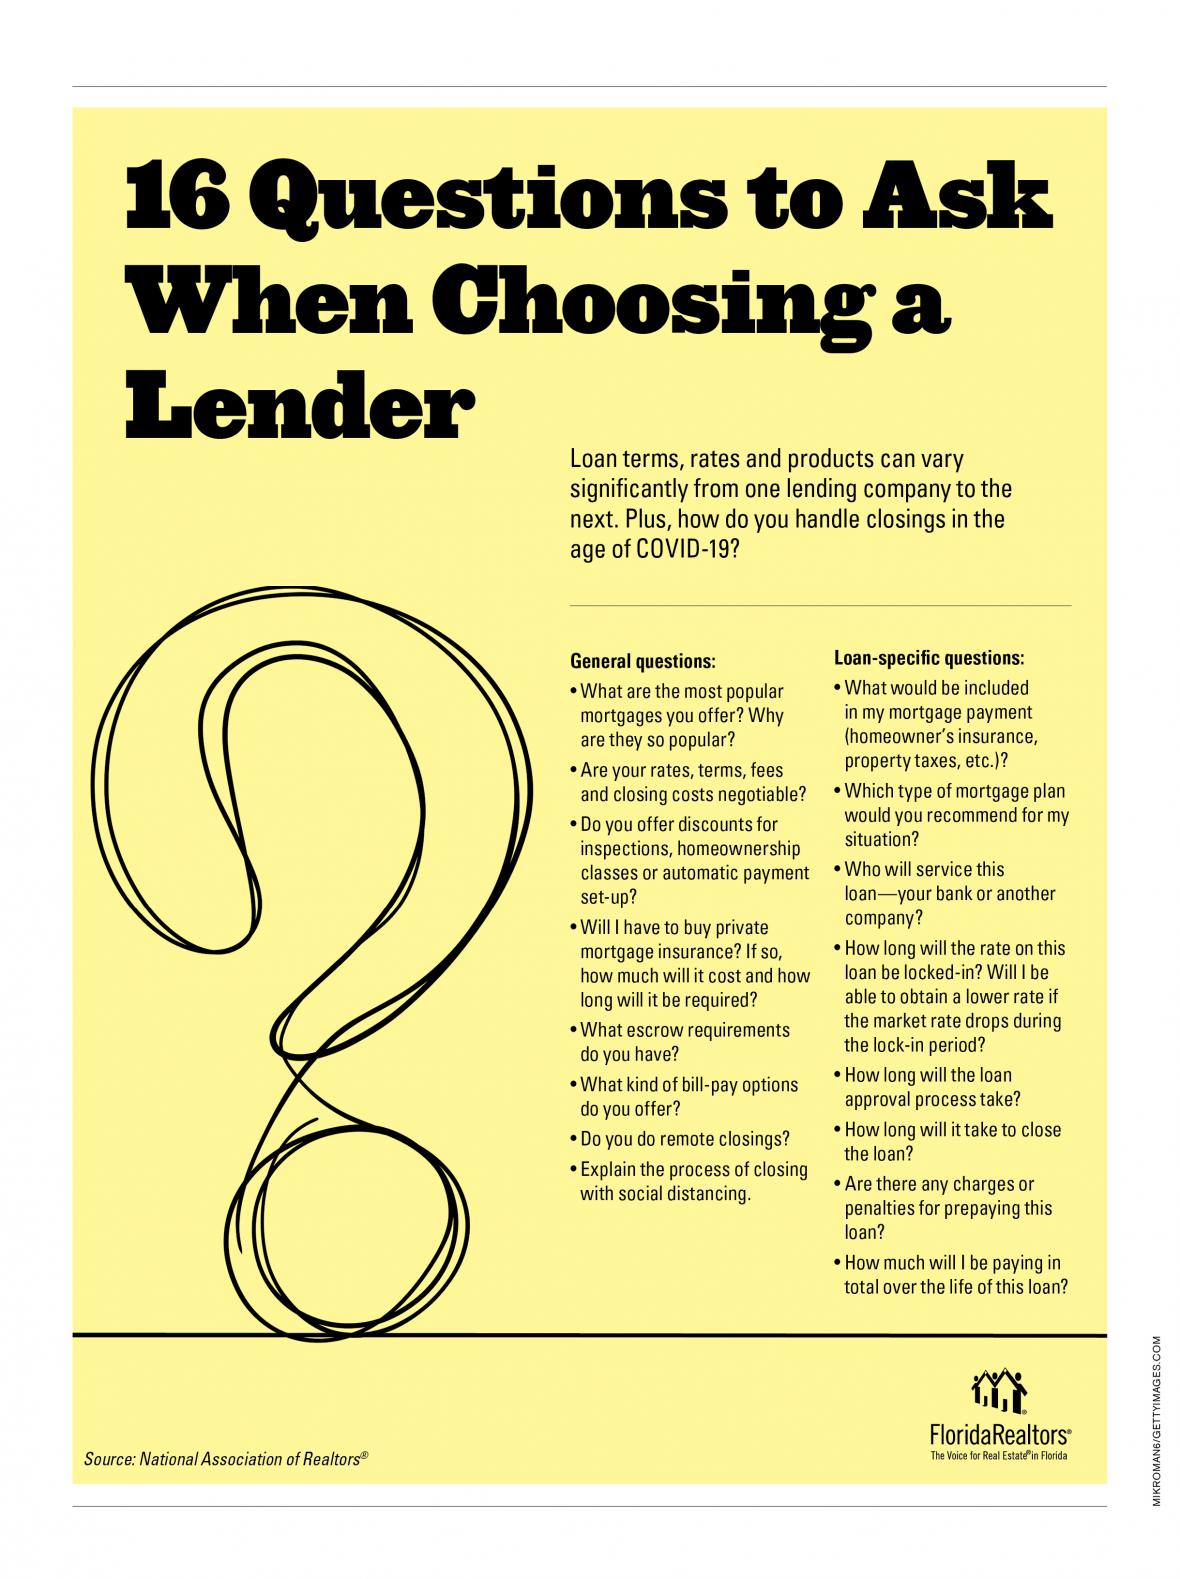 16 Questions to Ask When Choosing a Lender infographic